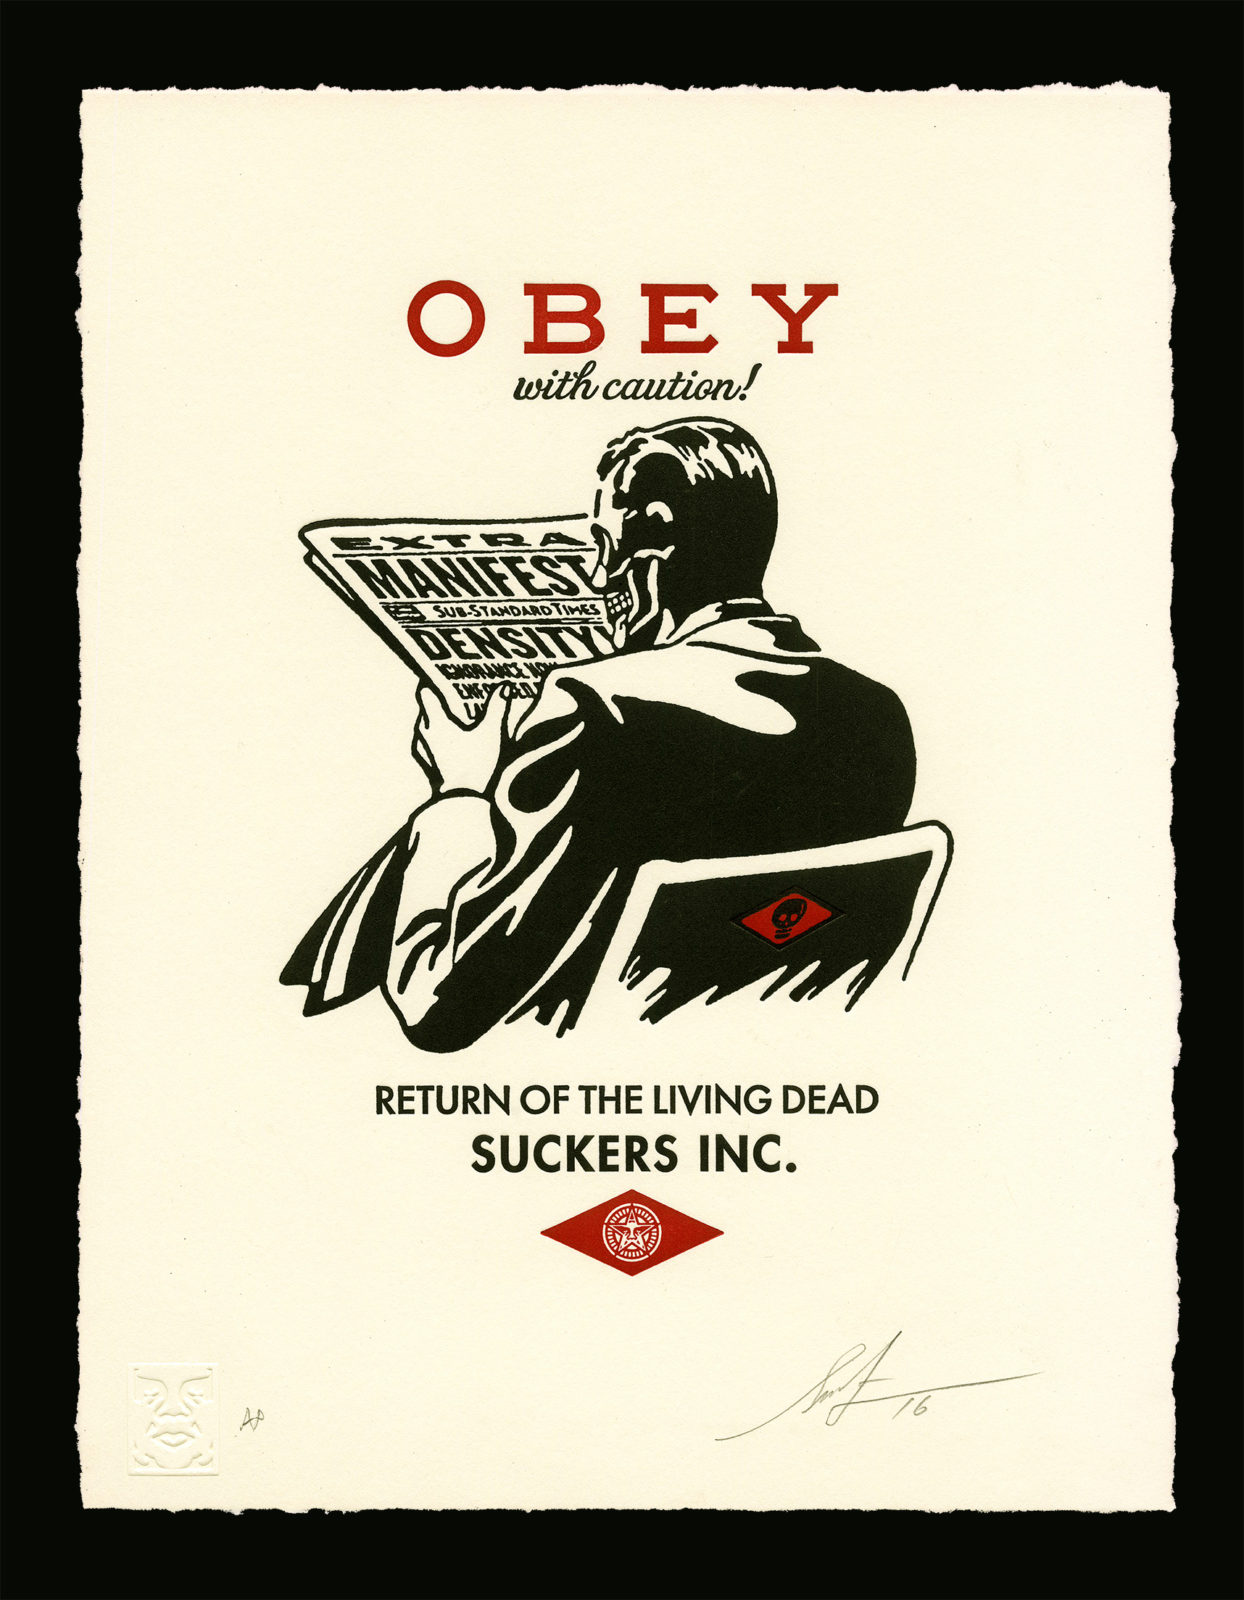 obey_with_caution-letterpress